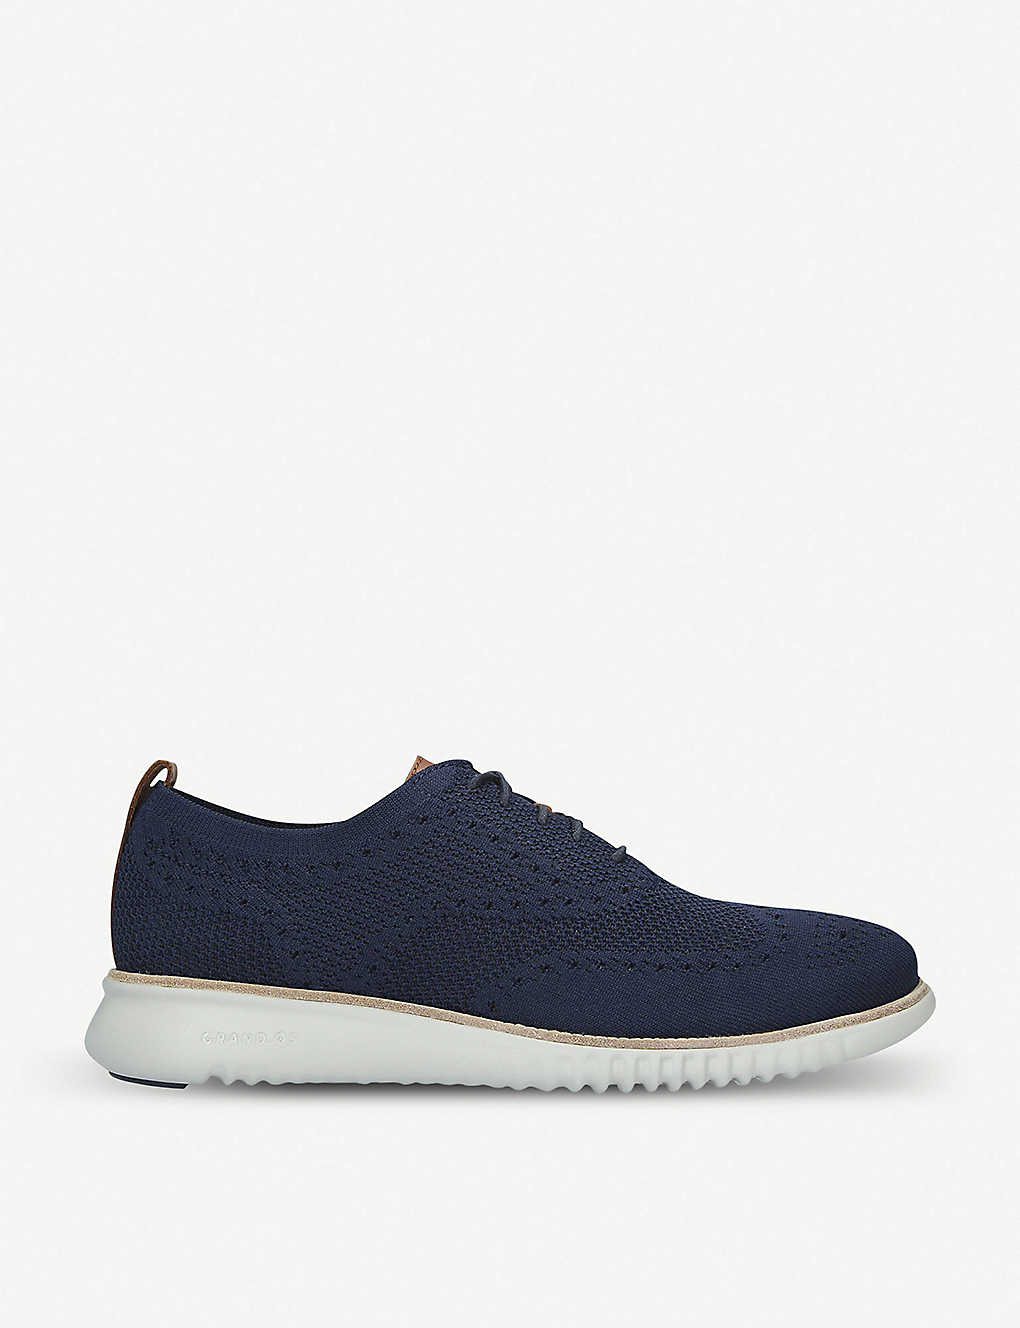 COLE HAAN: 2.ZERØGRAND Stitchlite Oxford leather and knit lace-up shoes